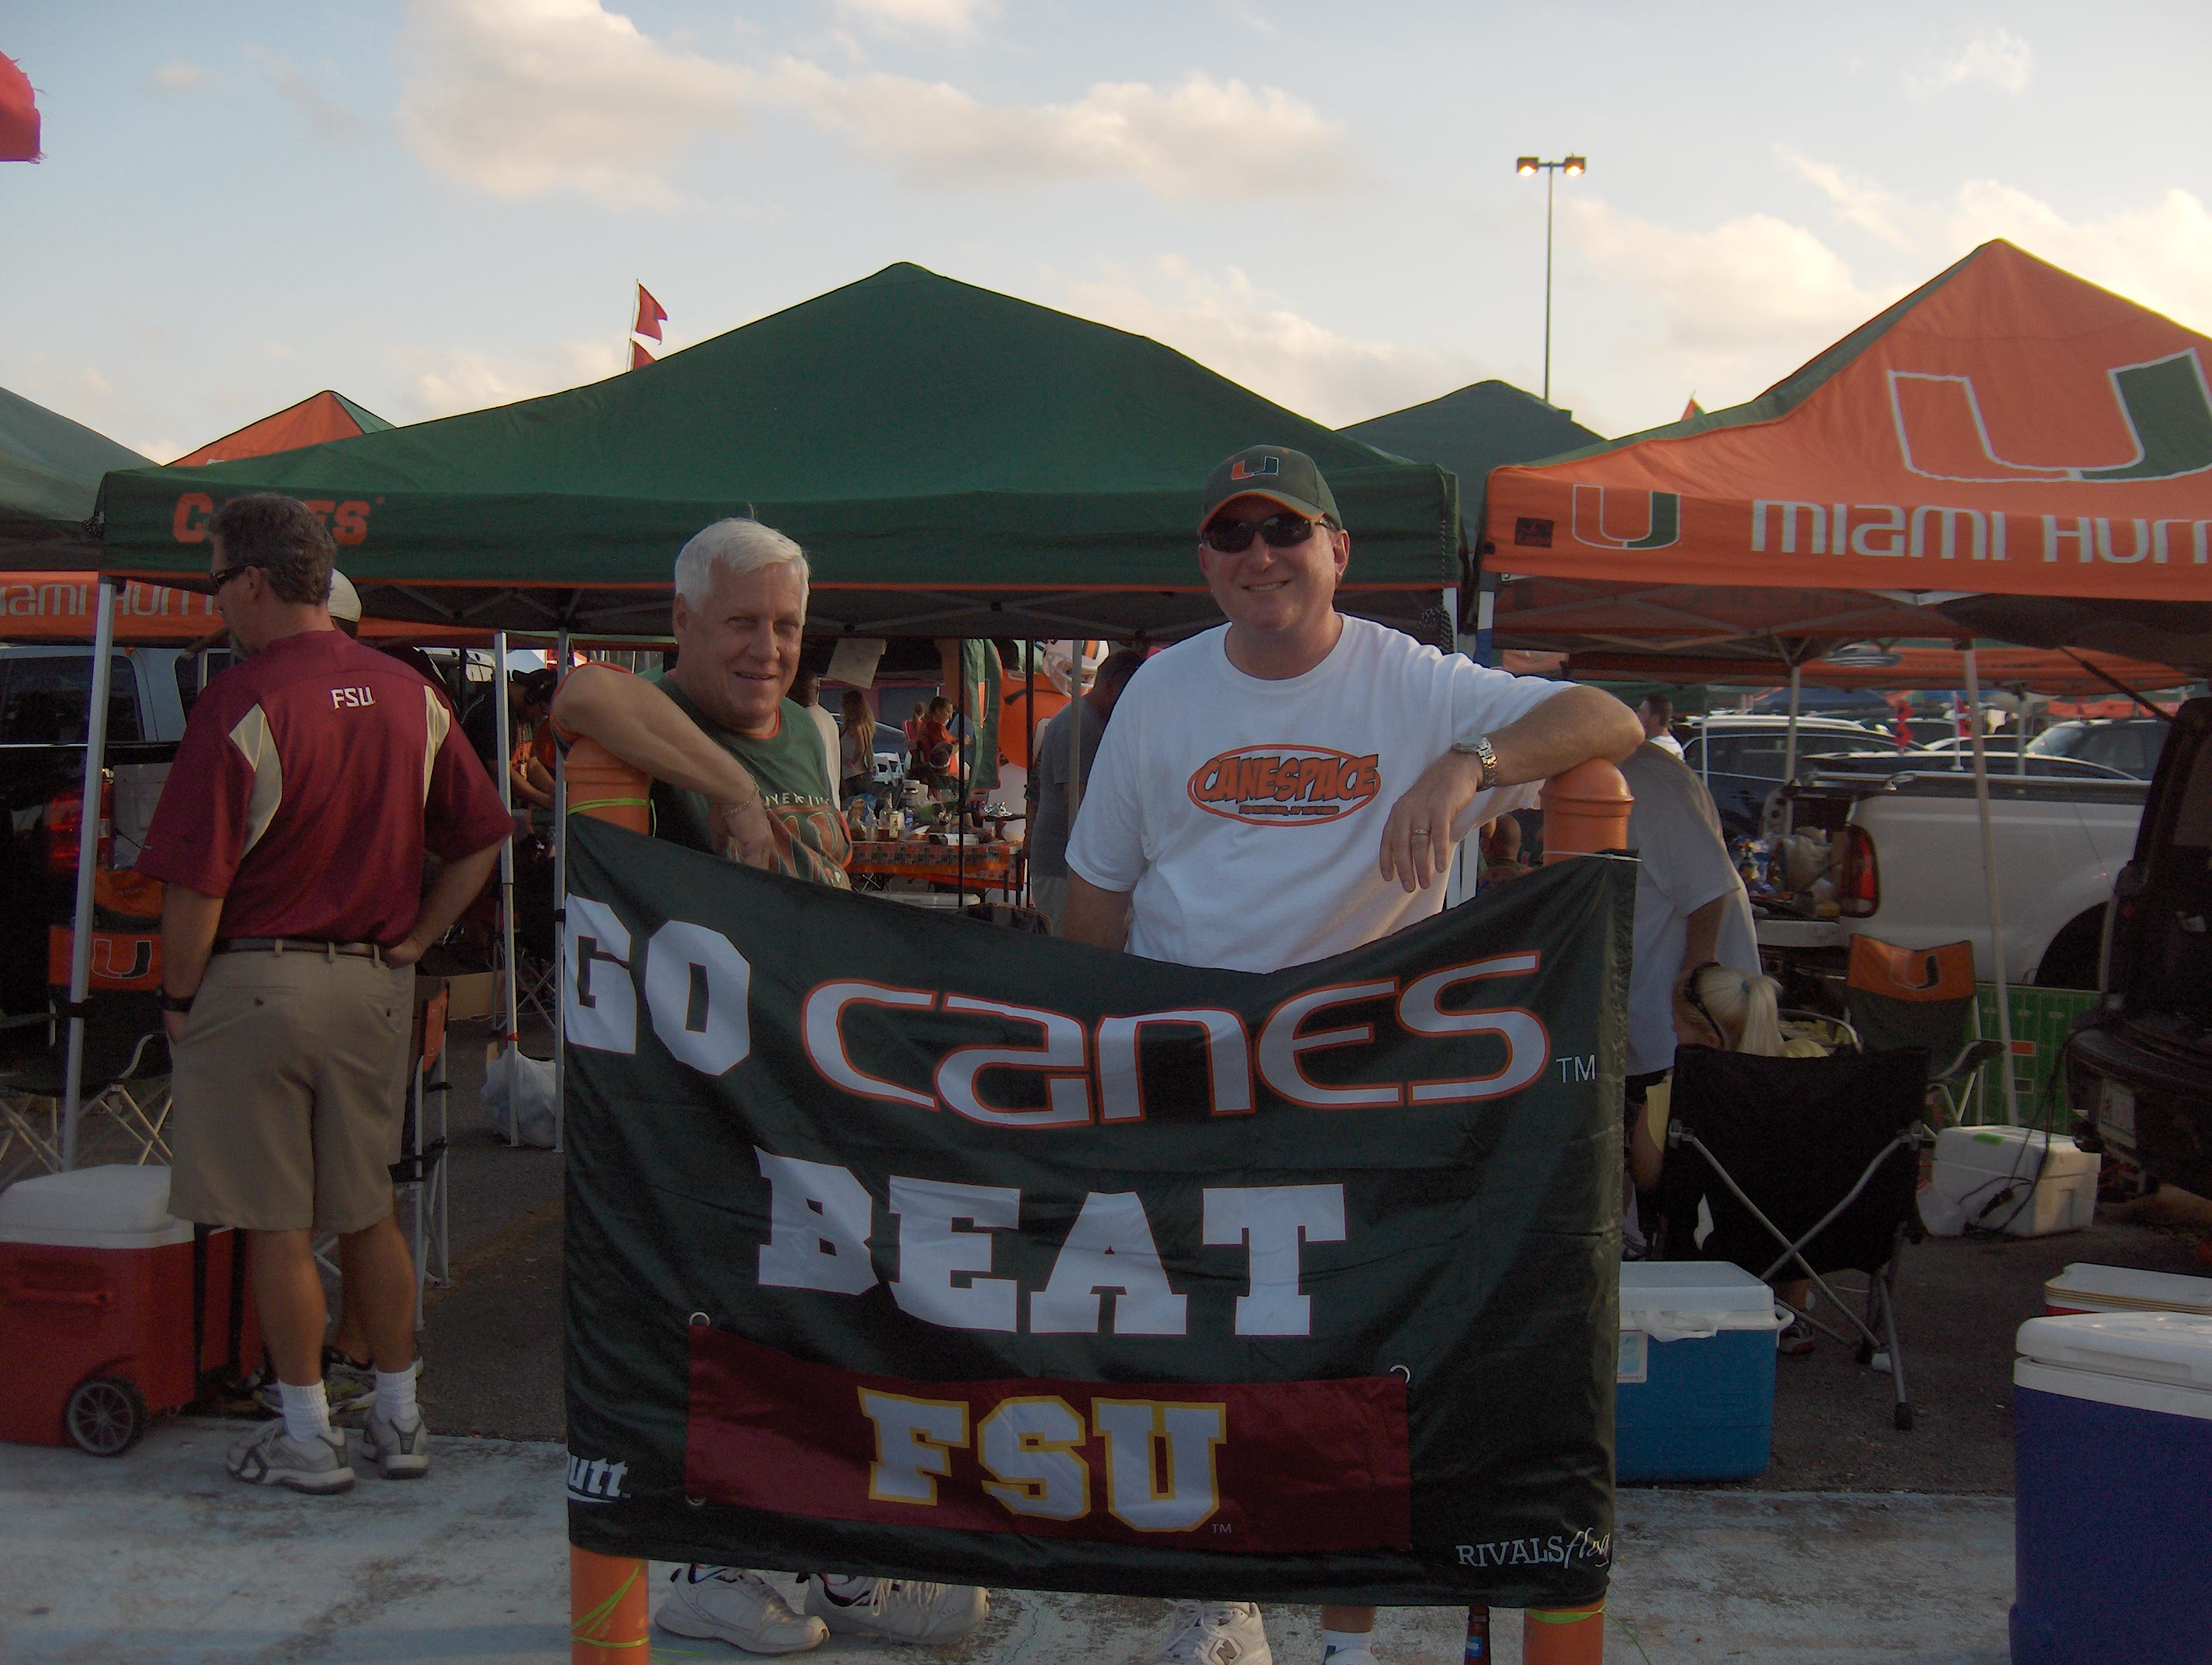 Canespace Miami Vs Fsu Let The Hating Commence